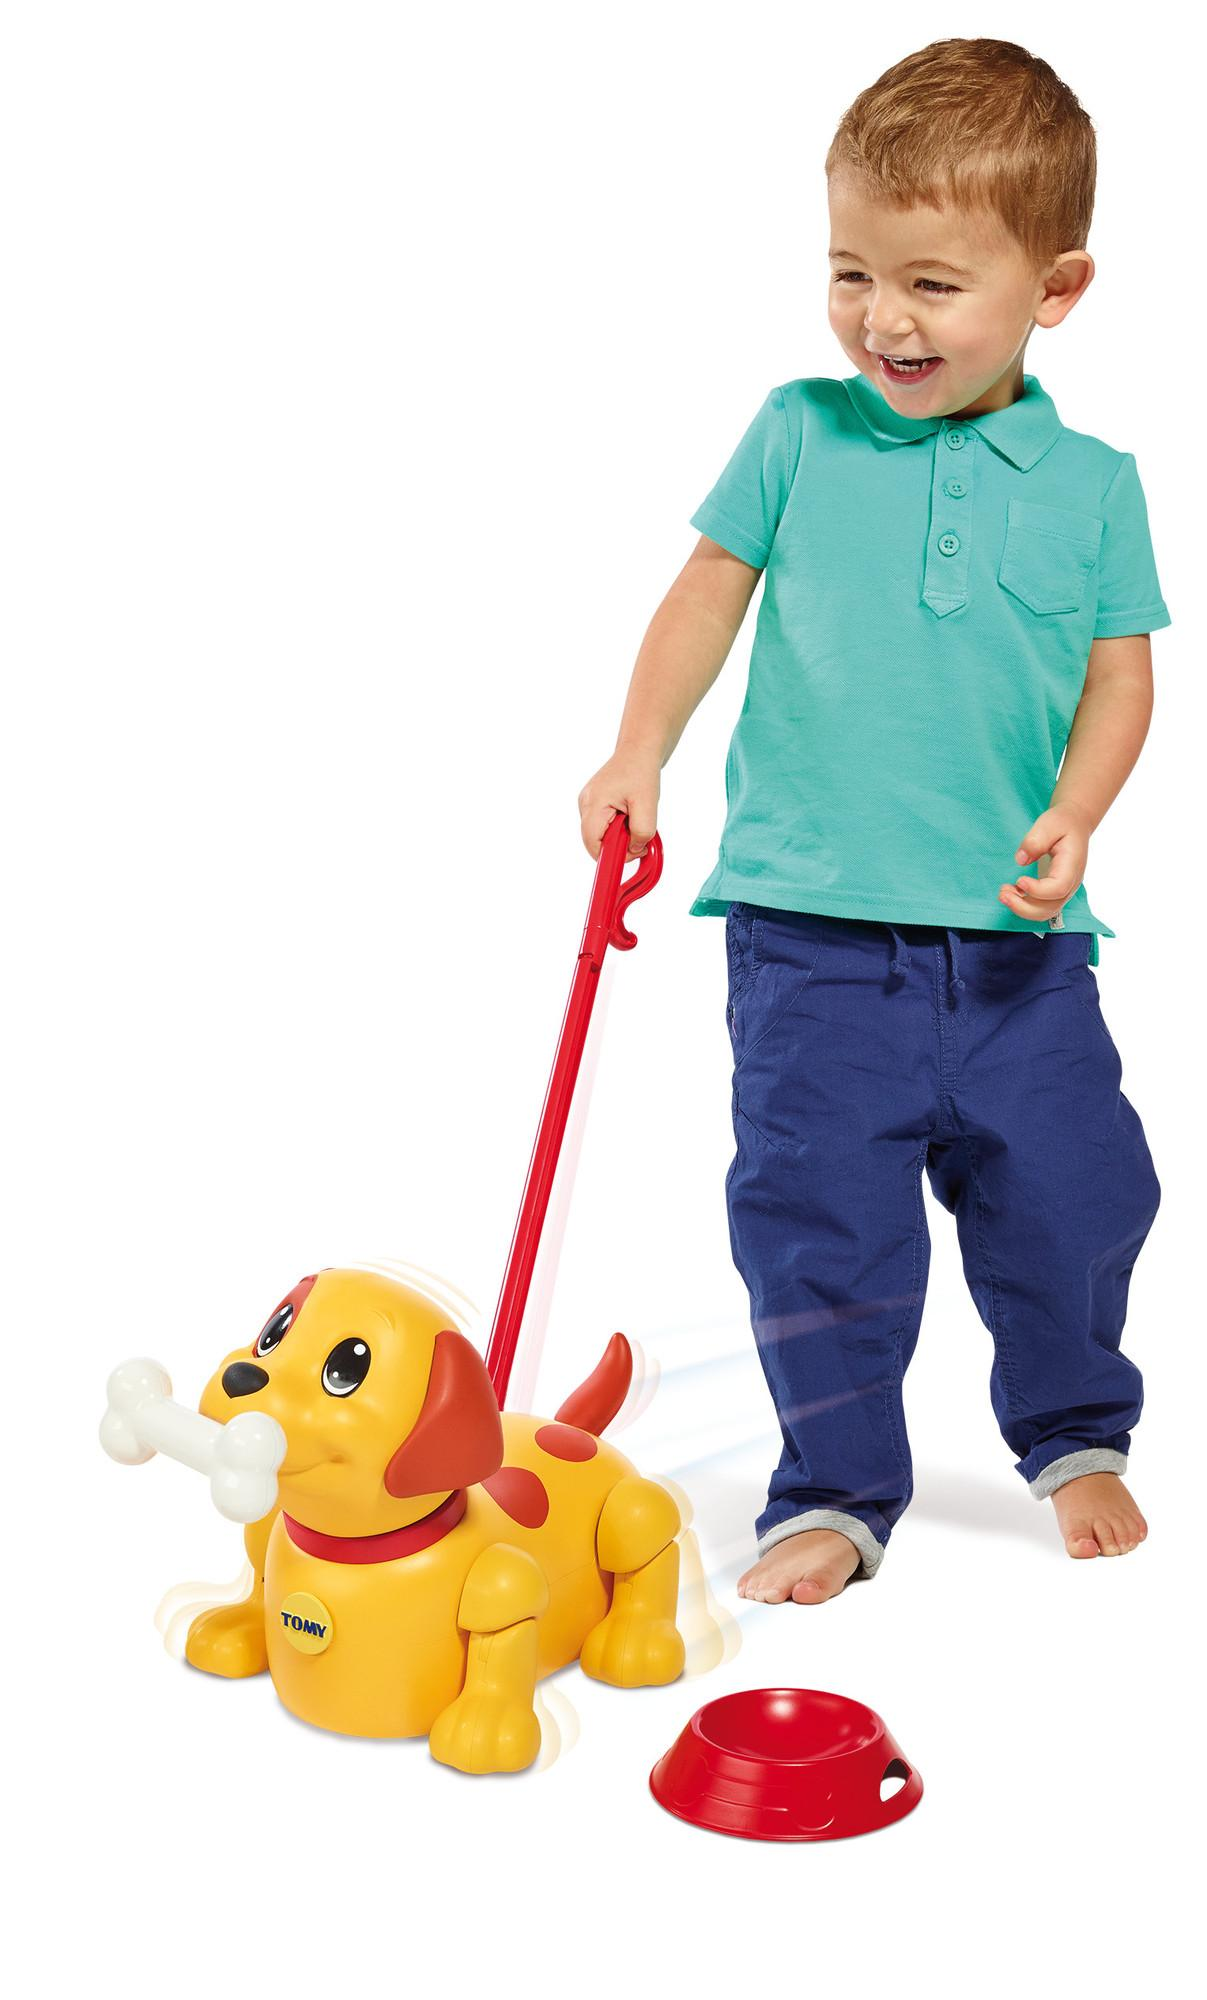 Toys For Boys 18 Months : New toddler push pull robot dog activity toys gift